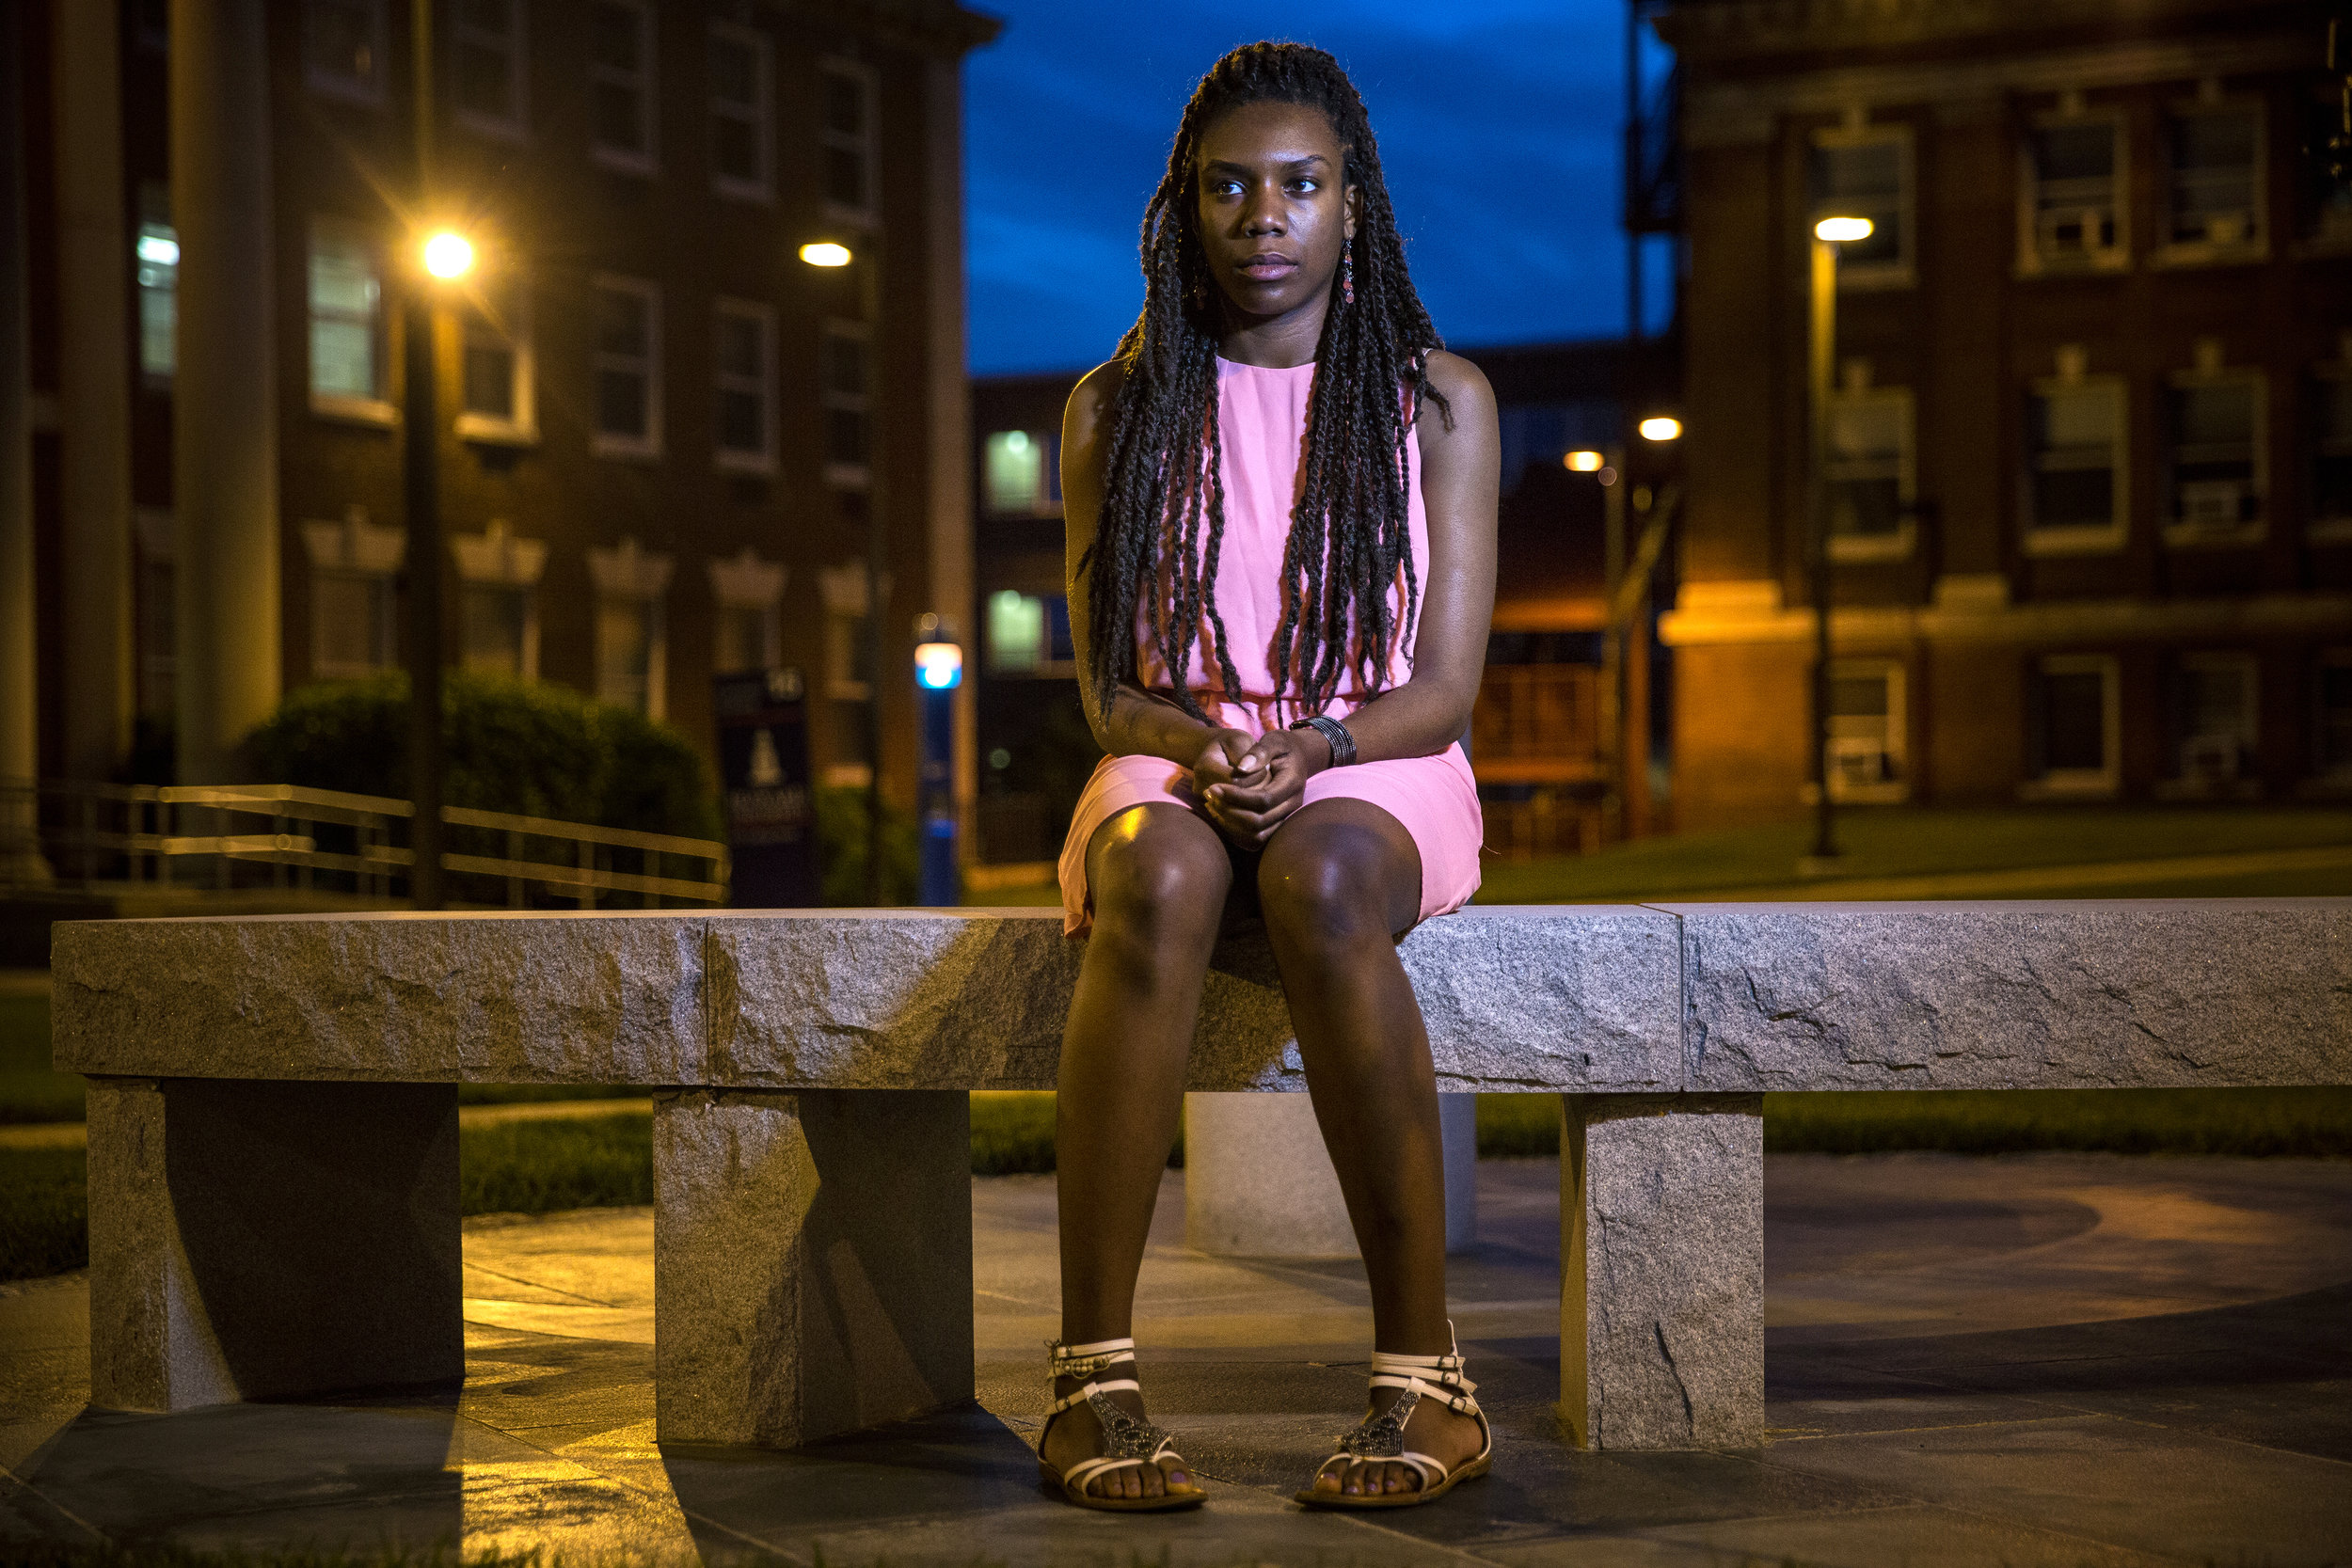 "Mikala Burt, a junior at Howard University, was sexually assaulted. Some guys she hadn't met before were hanging at a friend's house in Upper Marlboro, and she had a beer or two, just to be polite, wishing she weren't there. Then she realized, annoyed, that her friend was too drunk to drive her back to her dorm at Howard University. She decided just to try to get some sleep, and didn't think twice about curling up on a couch in the living room there; the father of one of the guys, who owned the house, was home at the time. She was confused when a man woke her up out of a deep sleep around 2 a.m. Her friend was asleep upstairs and this man was a friend of his whom she had never met before that night. He was over her on the couch and told her that her friend was asleep upstairs and that he wanted to have a good time. He told her he would pay her $100. That's when she snapped awake and, disgusted, told him to let her go. Her hands were up to protect herself, and he pinned her arms down, so hard that she couldn't shake him off.  She started screaming, but no one woke up. ""I wasn't even thinking about not getting away from him,"" she said, ""I was determined to fight my way out. I was more angry than scared – even though I was afraid – I was more angry that someone would try this and it was happening."" He was lying down on top of her and she somehow pulled a knee up quickly (""like a ninja"") and kicked him as hard as she could in the chest. ""He fell backward and I just ran."" She ran to a neighbor's house, called her sister and her roommate for a ride home, and called the police."